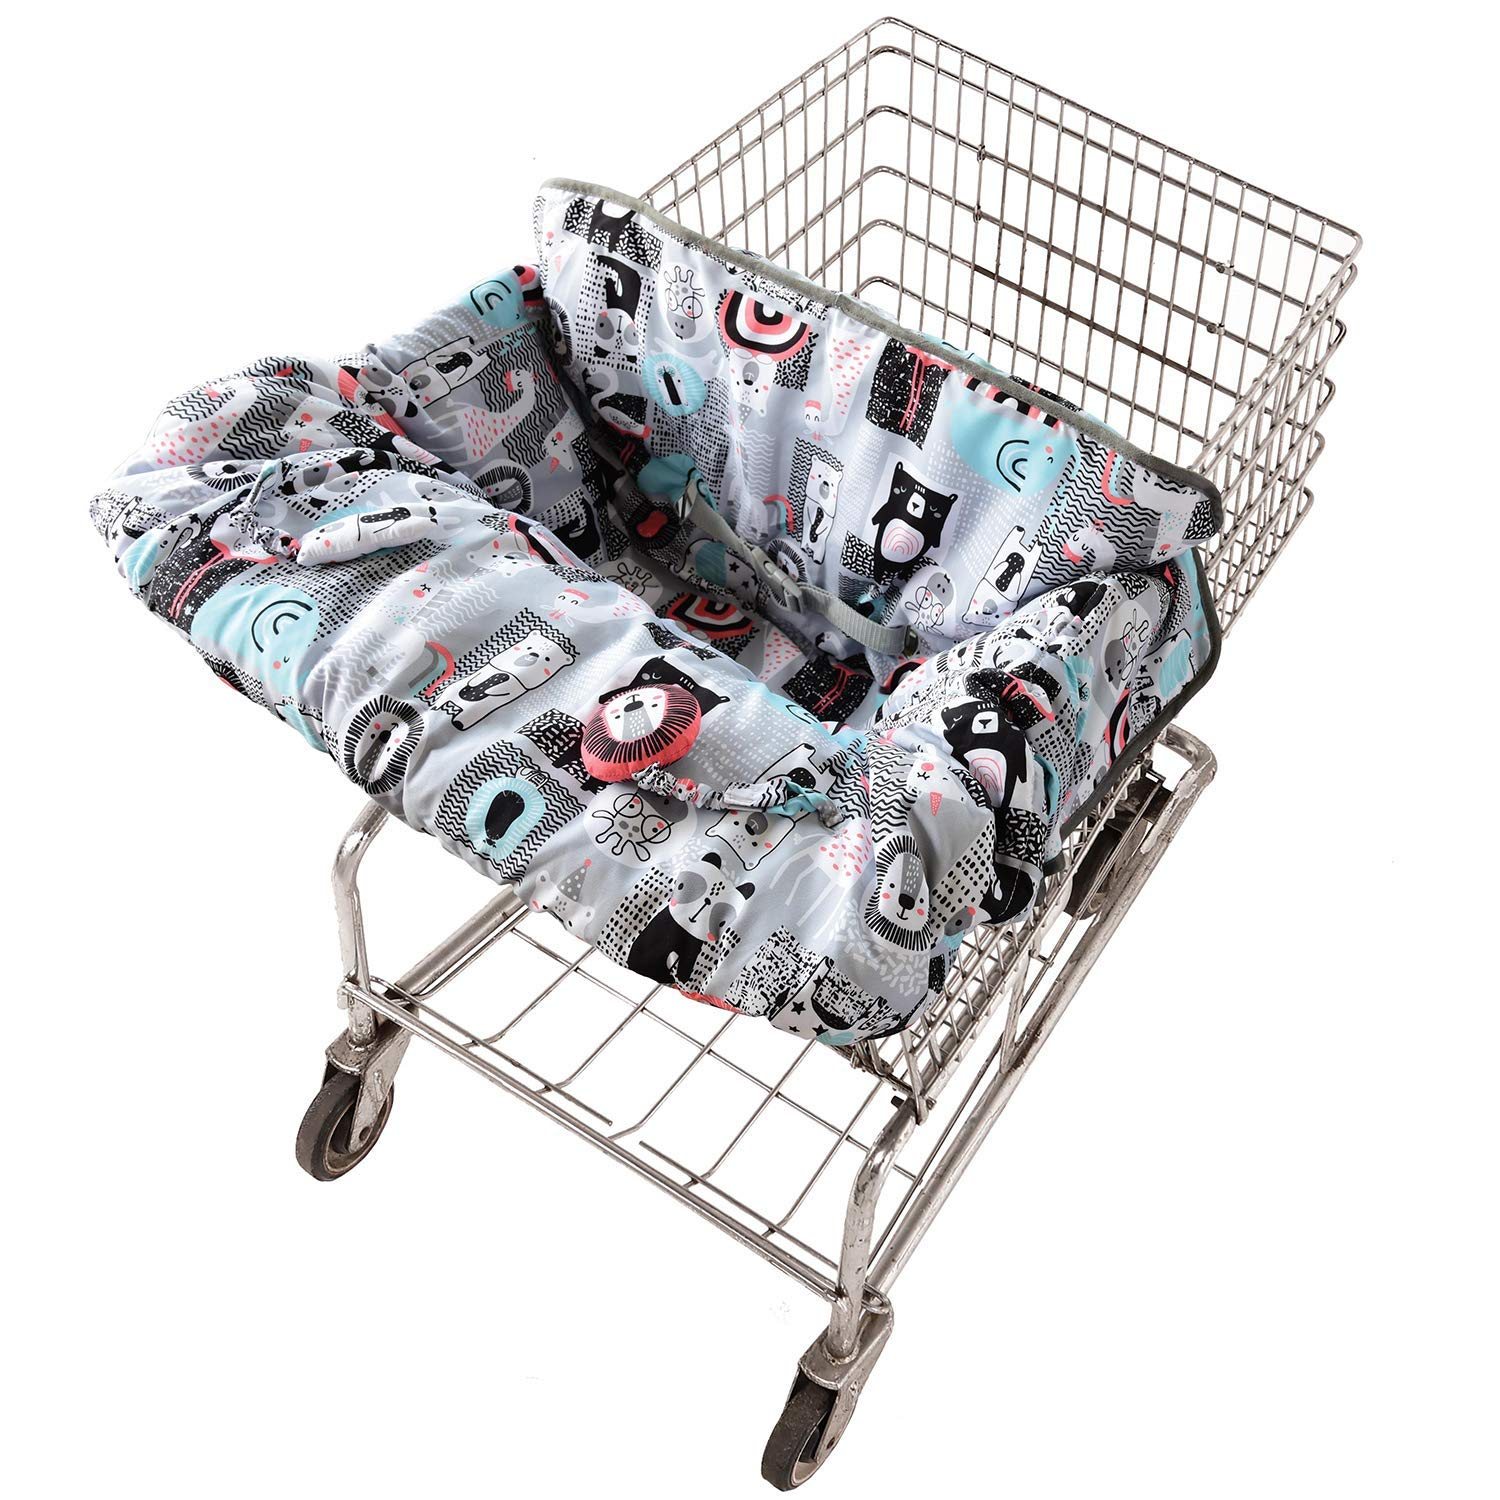 Travel Bug Baby & Toddler 2-in 1 Reversible Cover for Shopping Carts & High Chairs with Toys, Universal Fit, Washable